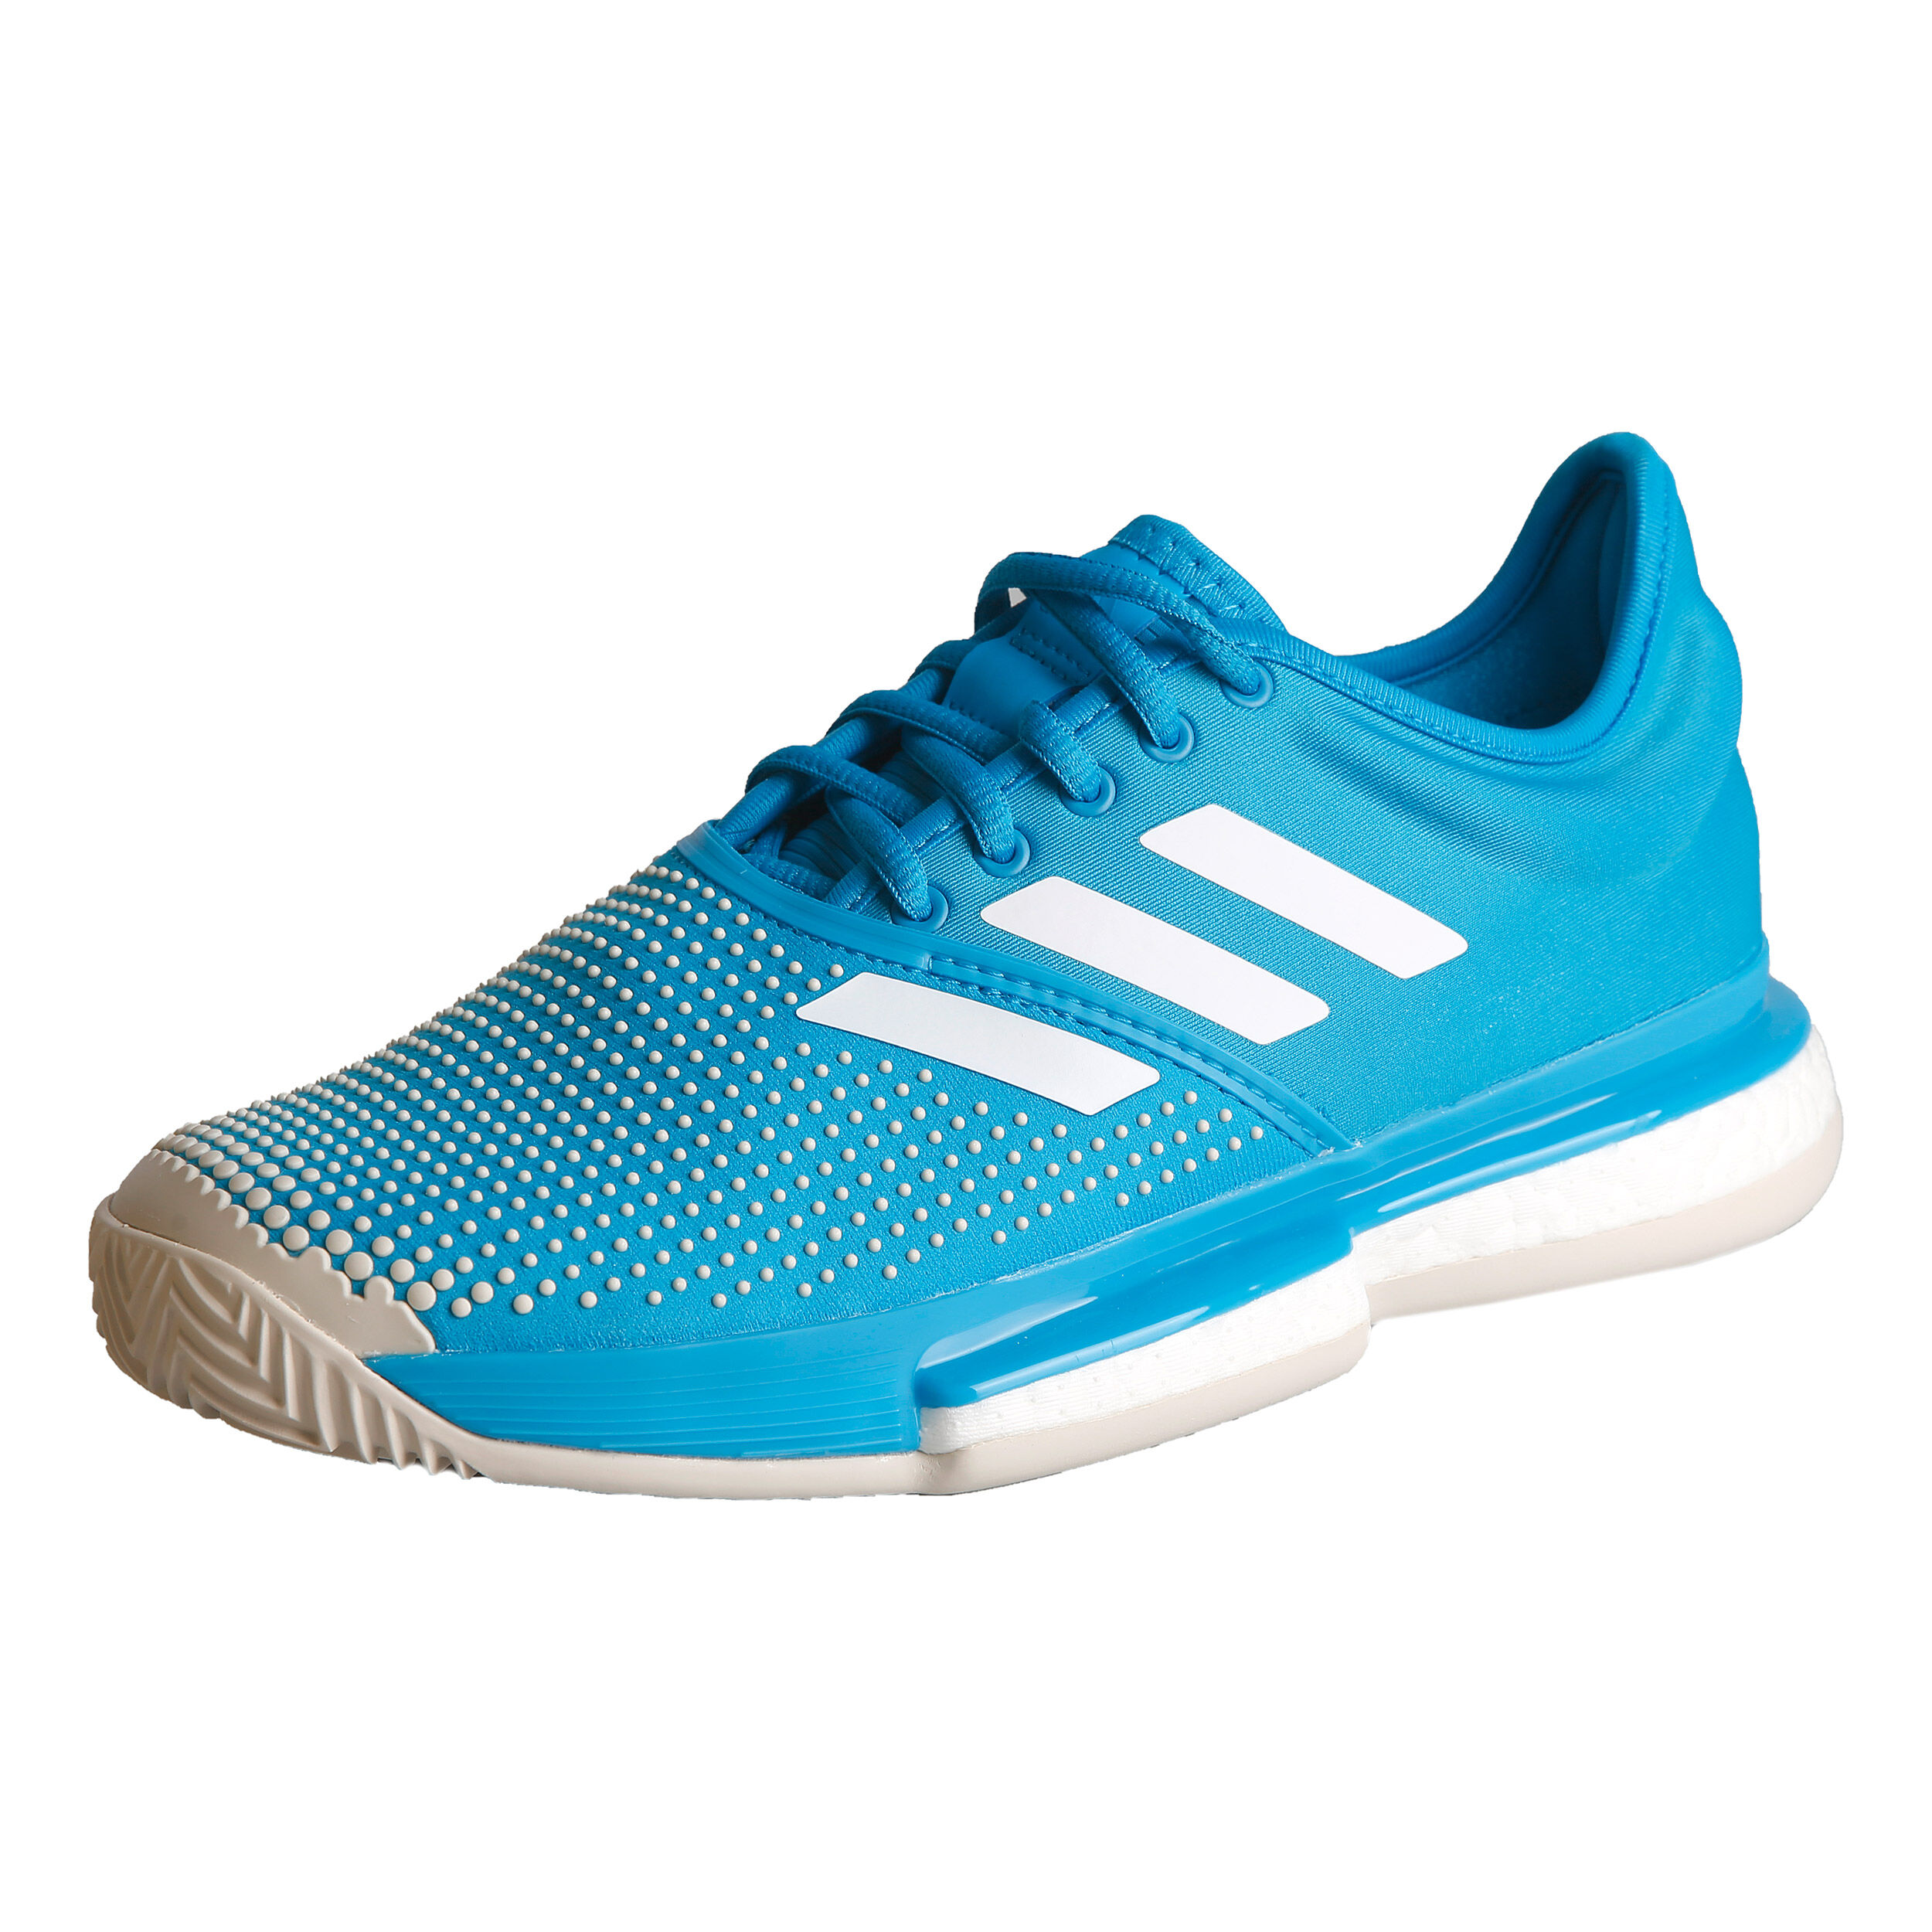 adidas Sole Court Boost Clay Chaussure Terre Battue Femmes